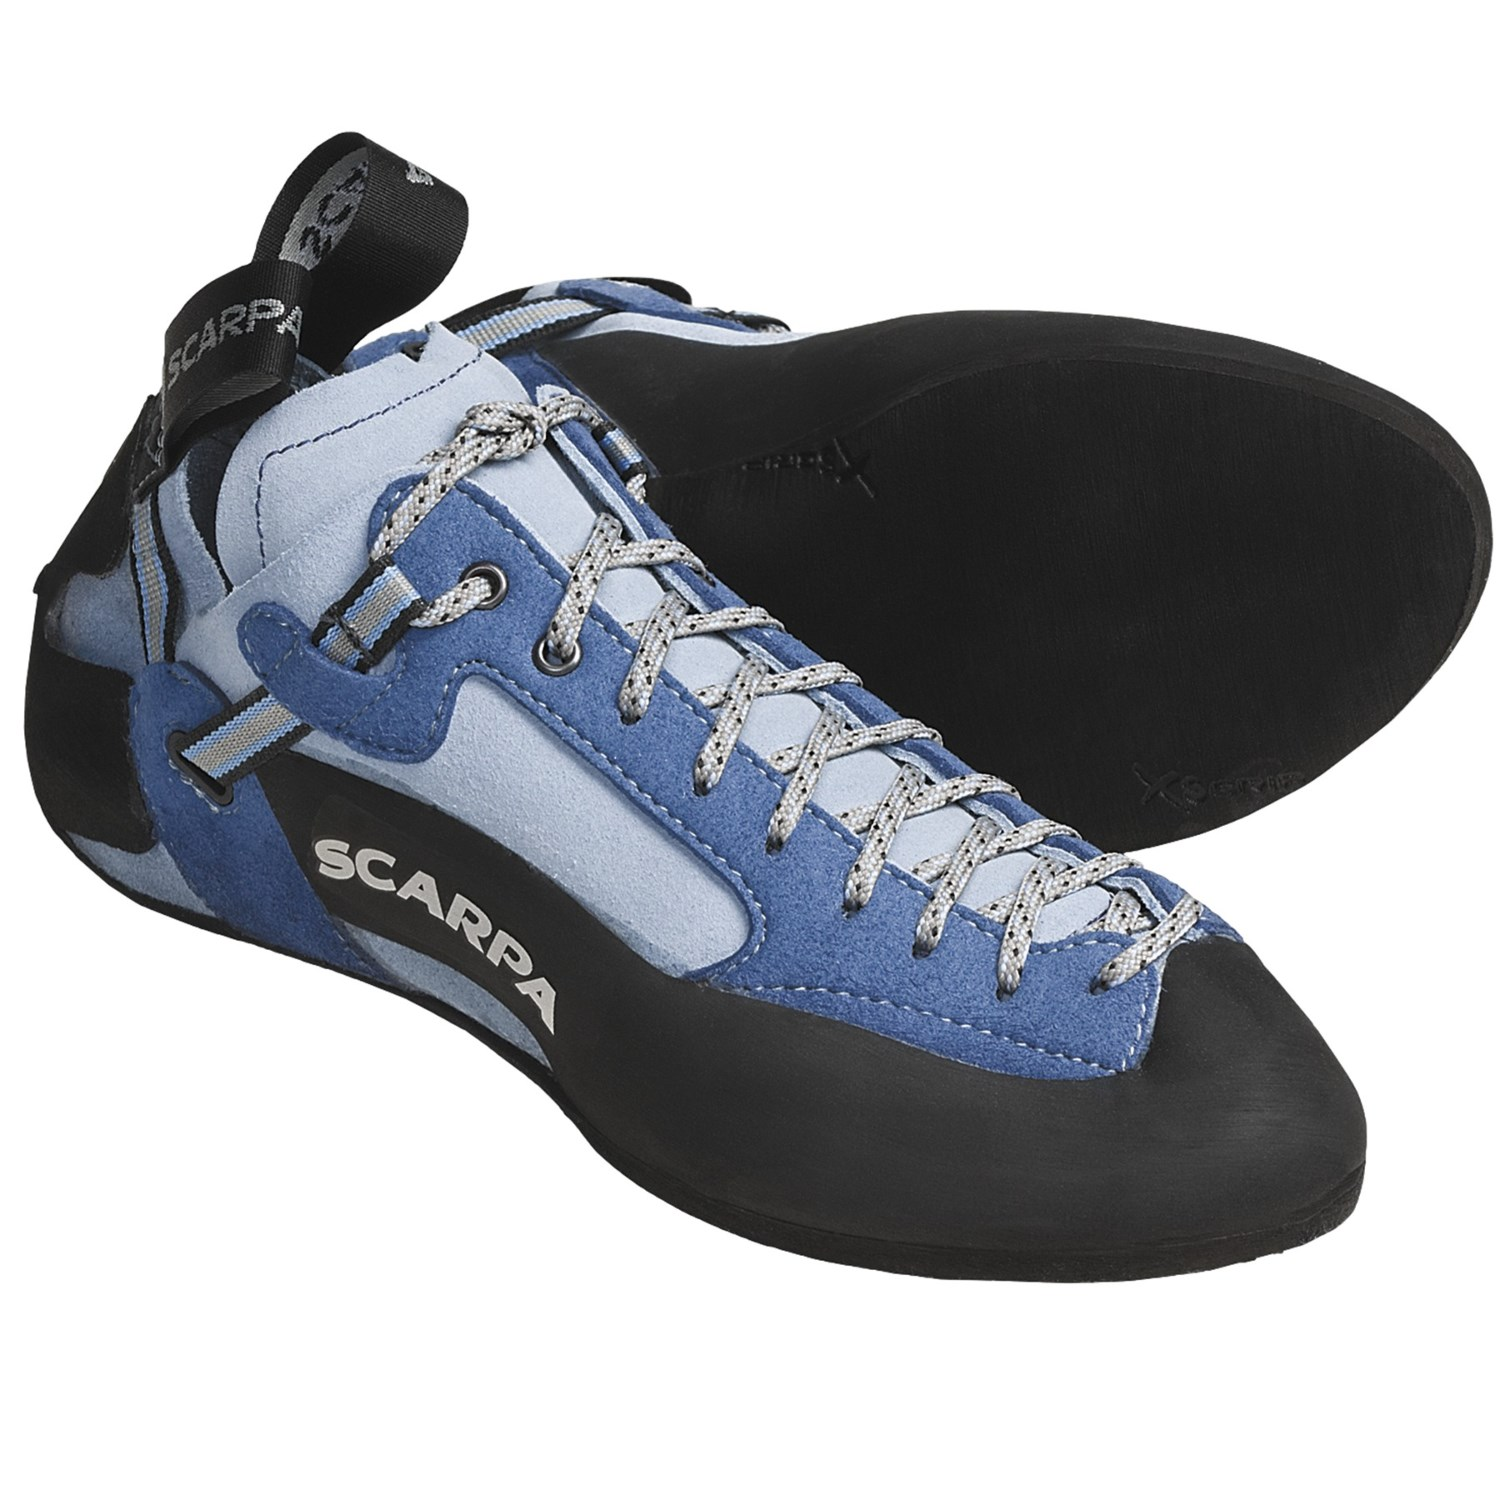 Scarpa Techno Climbing Shoes (For Women) in Arctic